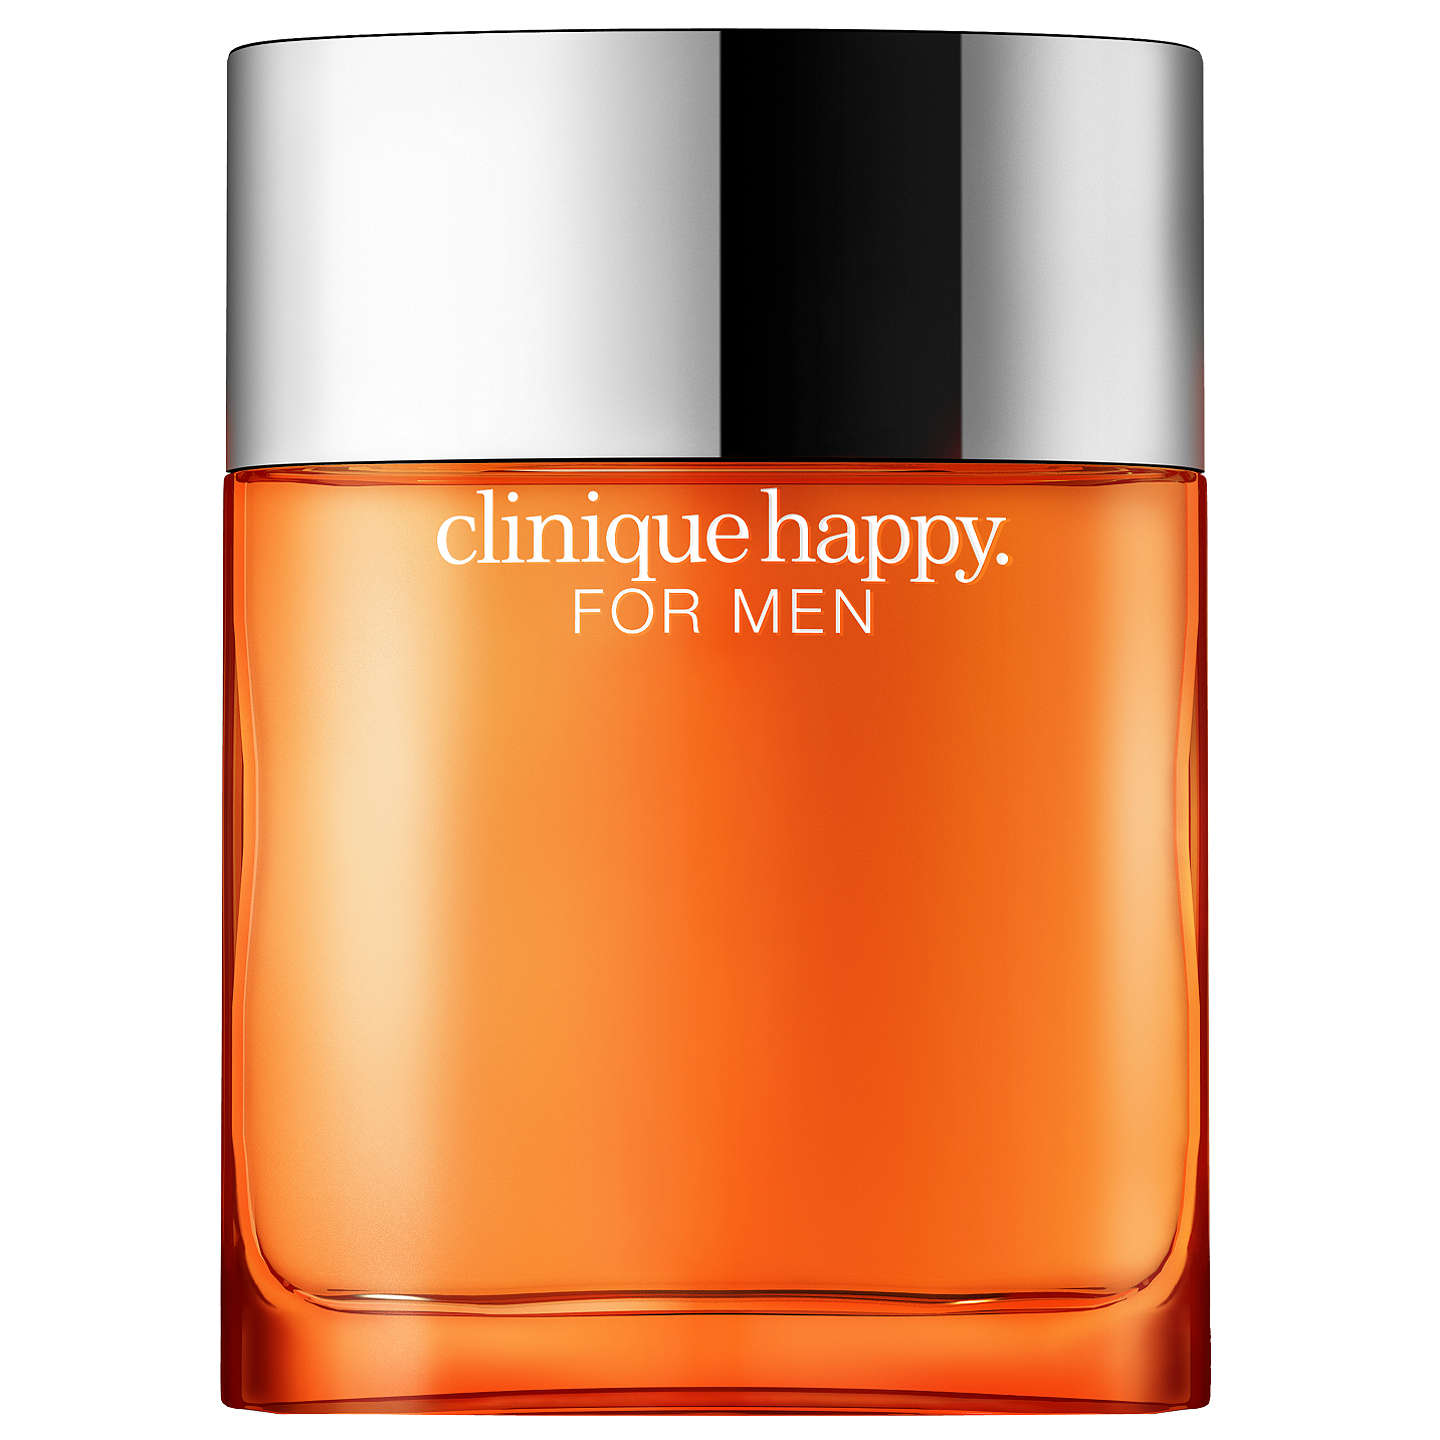 BuyClinique Happy For Men Cologne Spray, 50ml Online at johnlewis.com